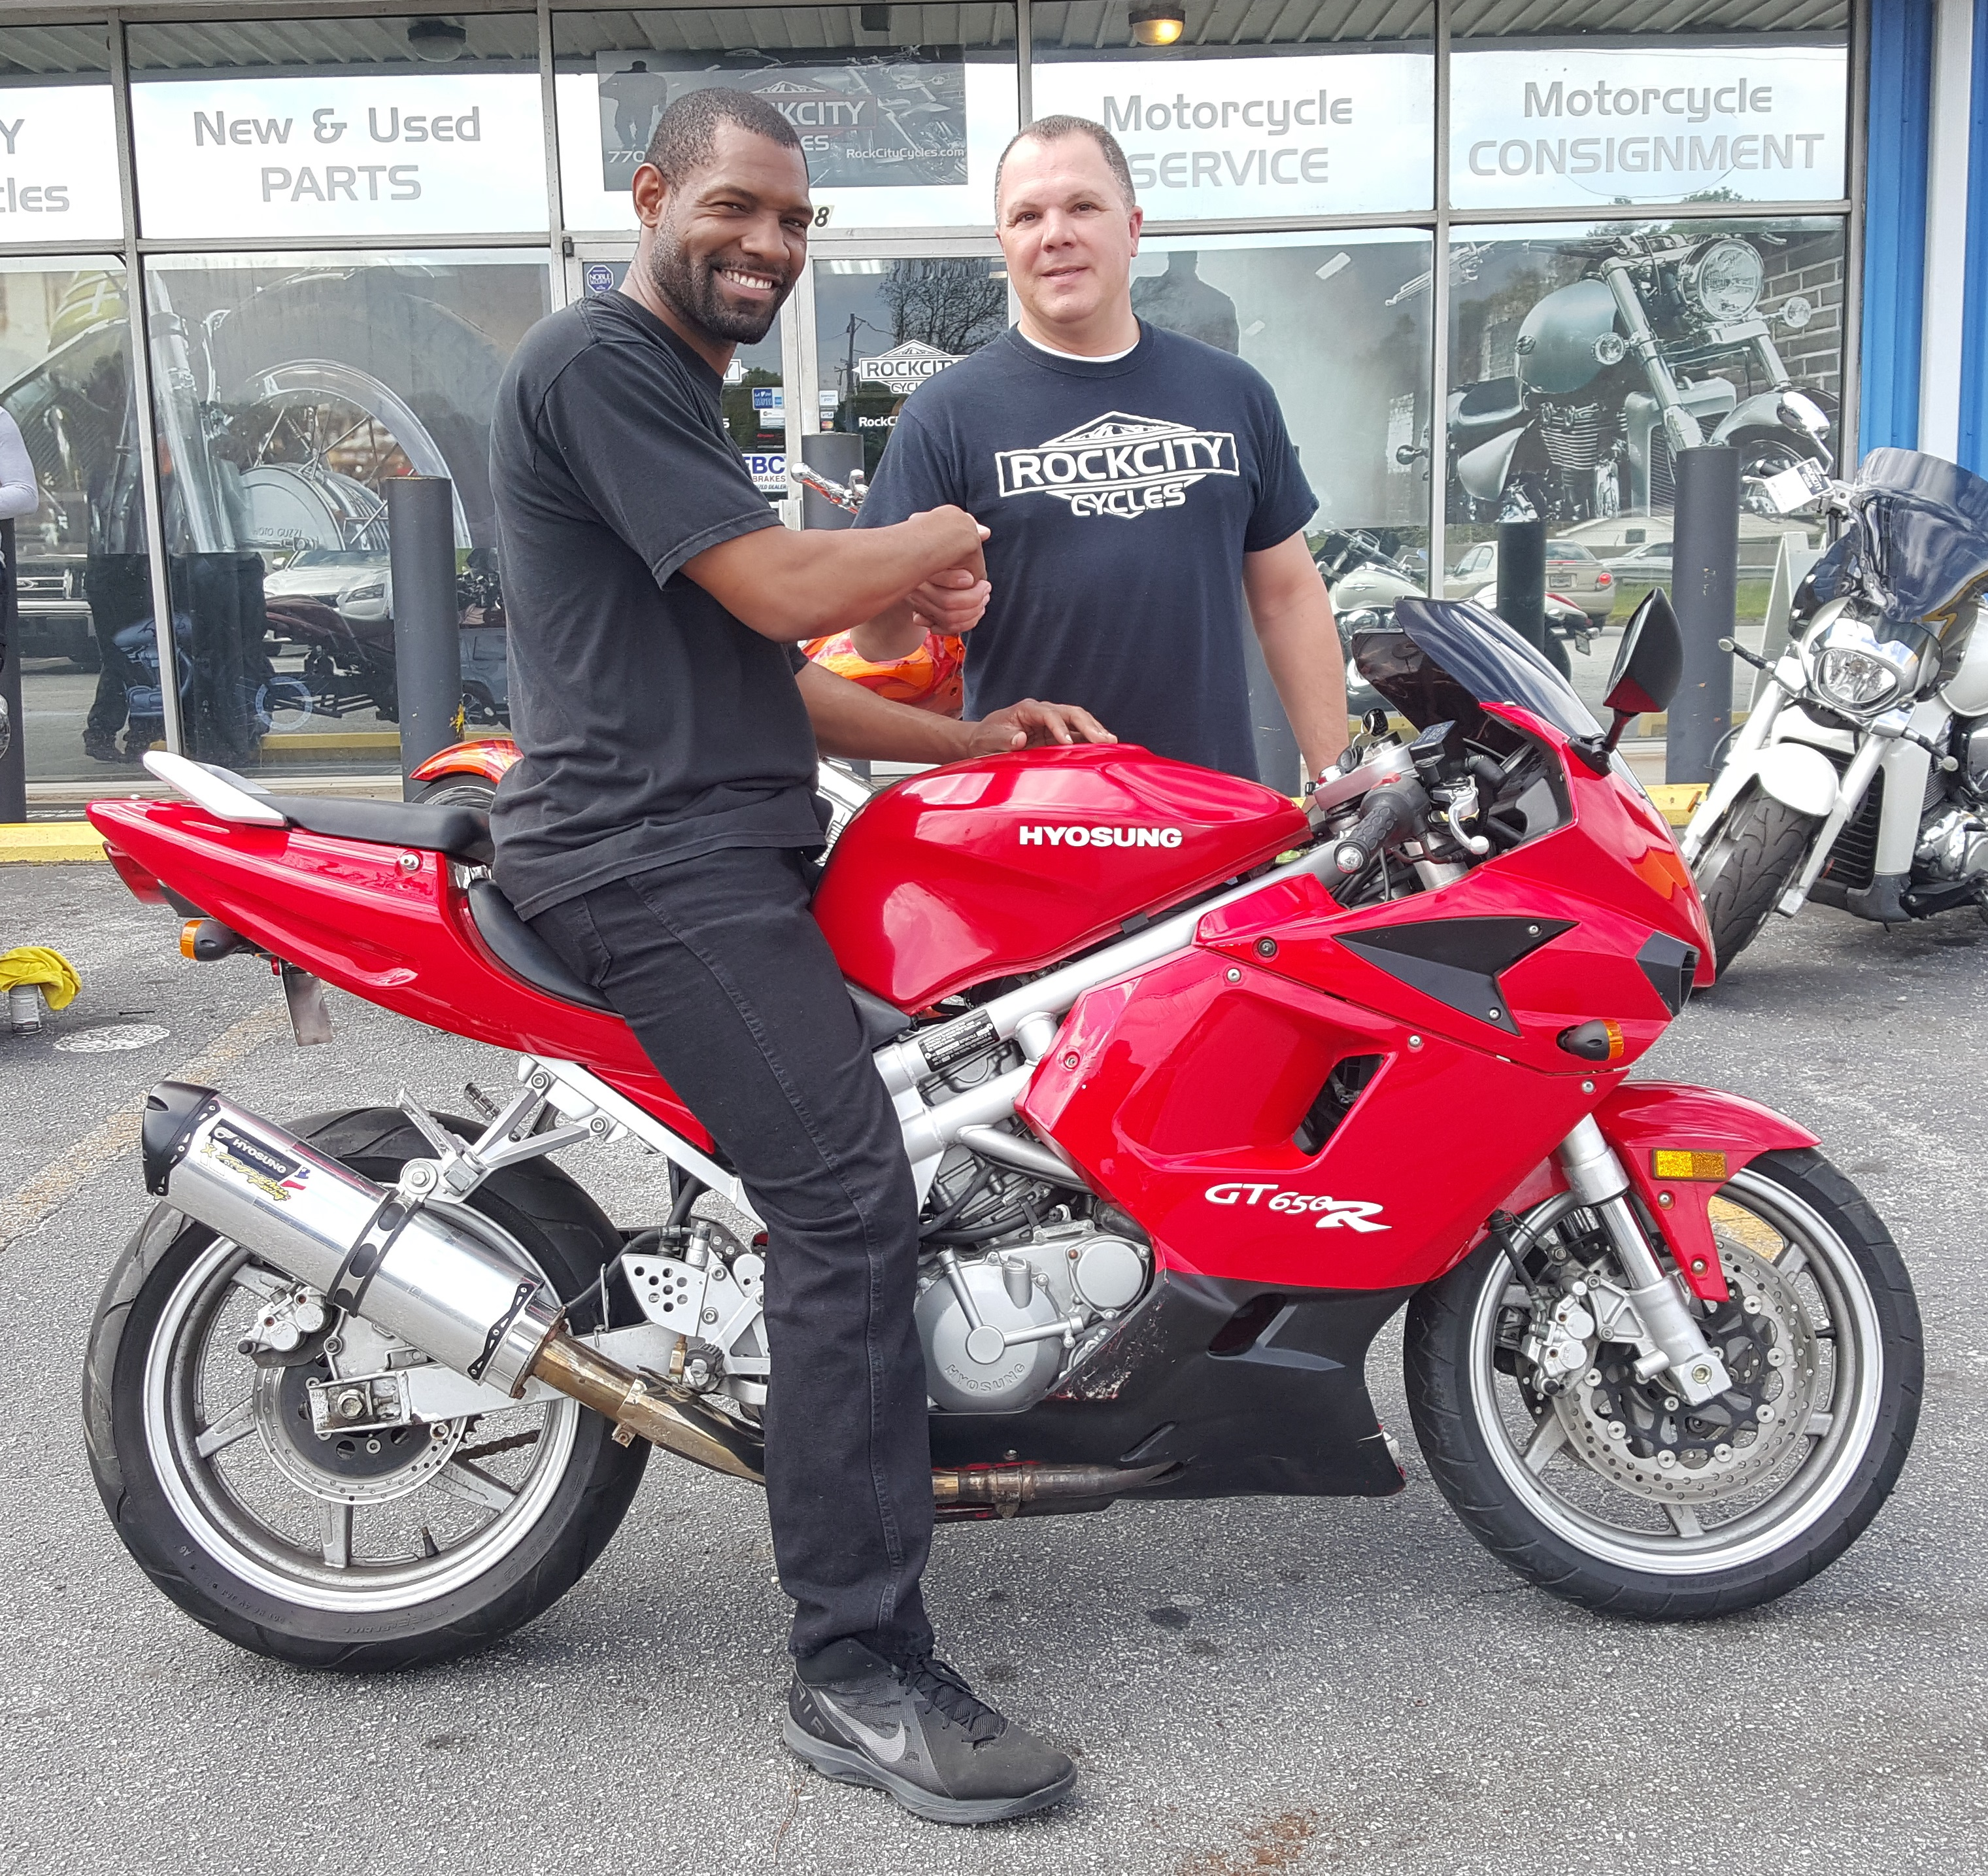 Derrick T. with his 2005 Hyosung GT650R